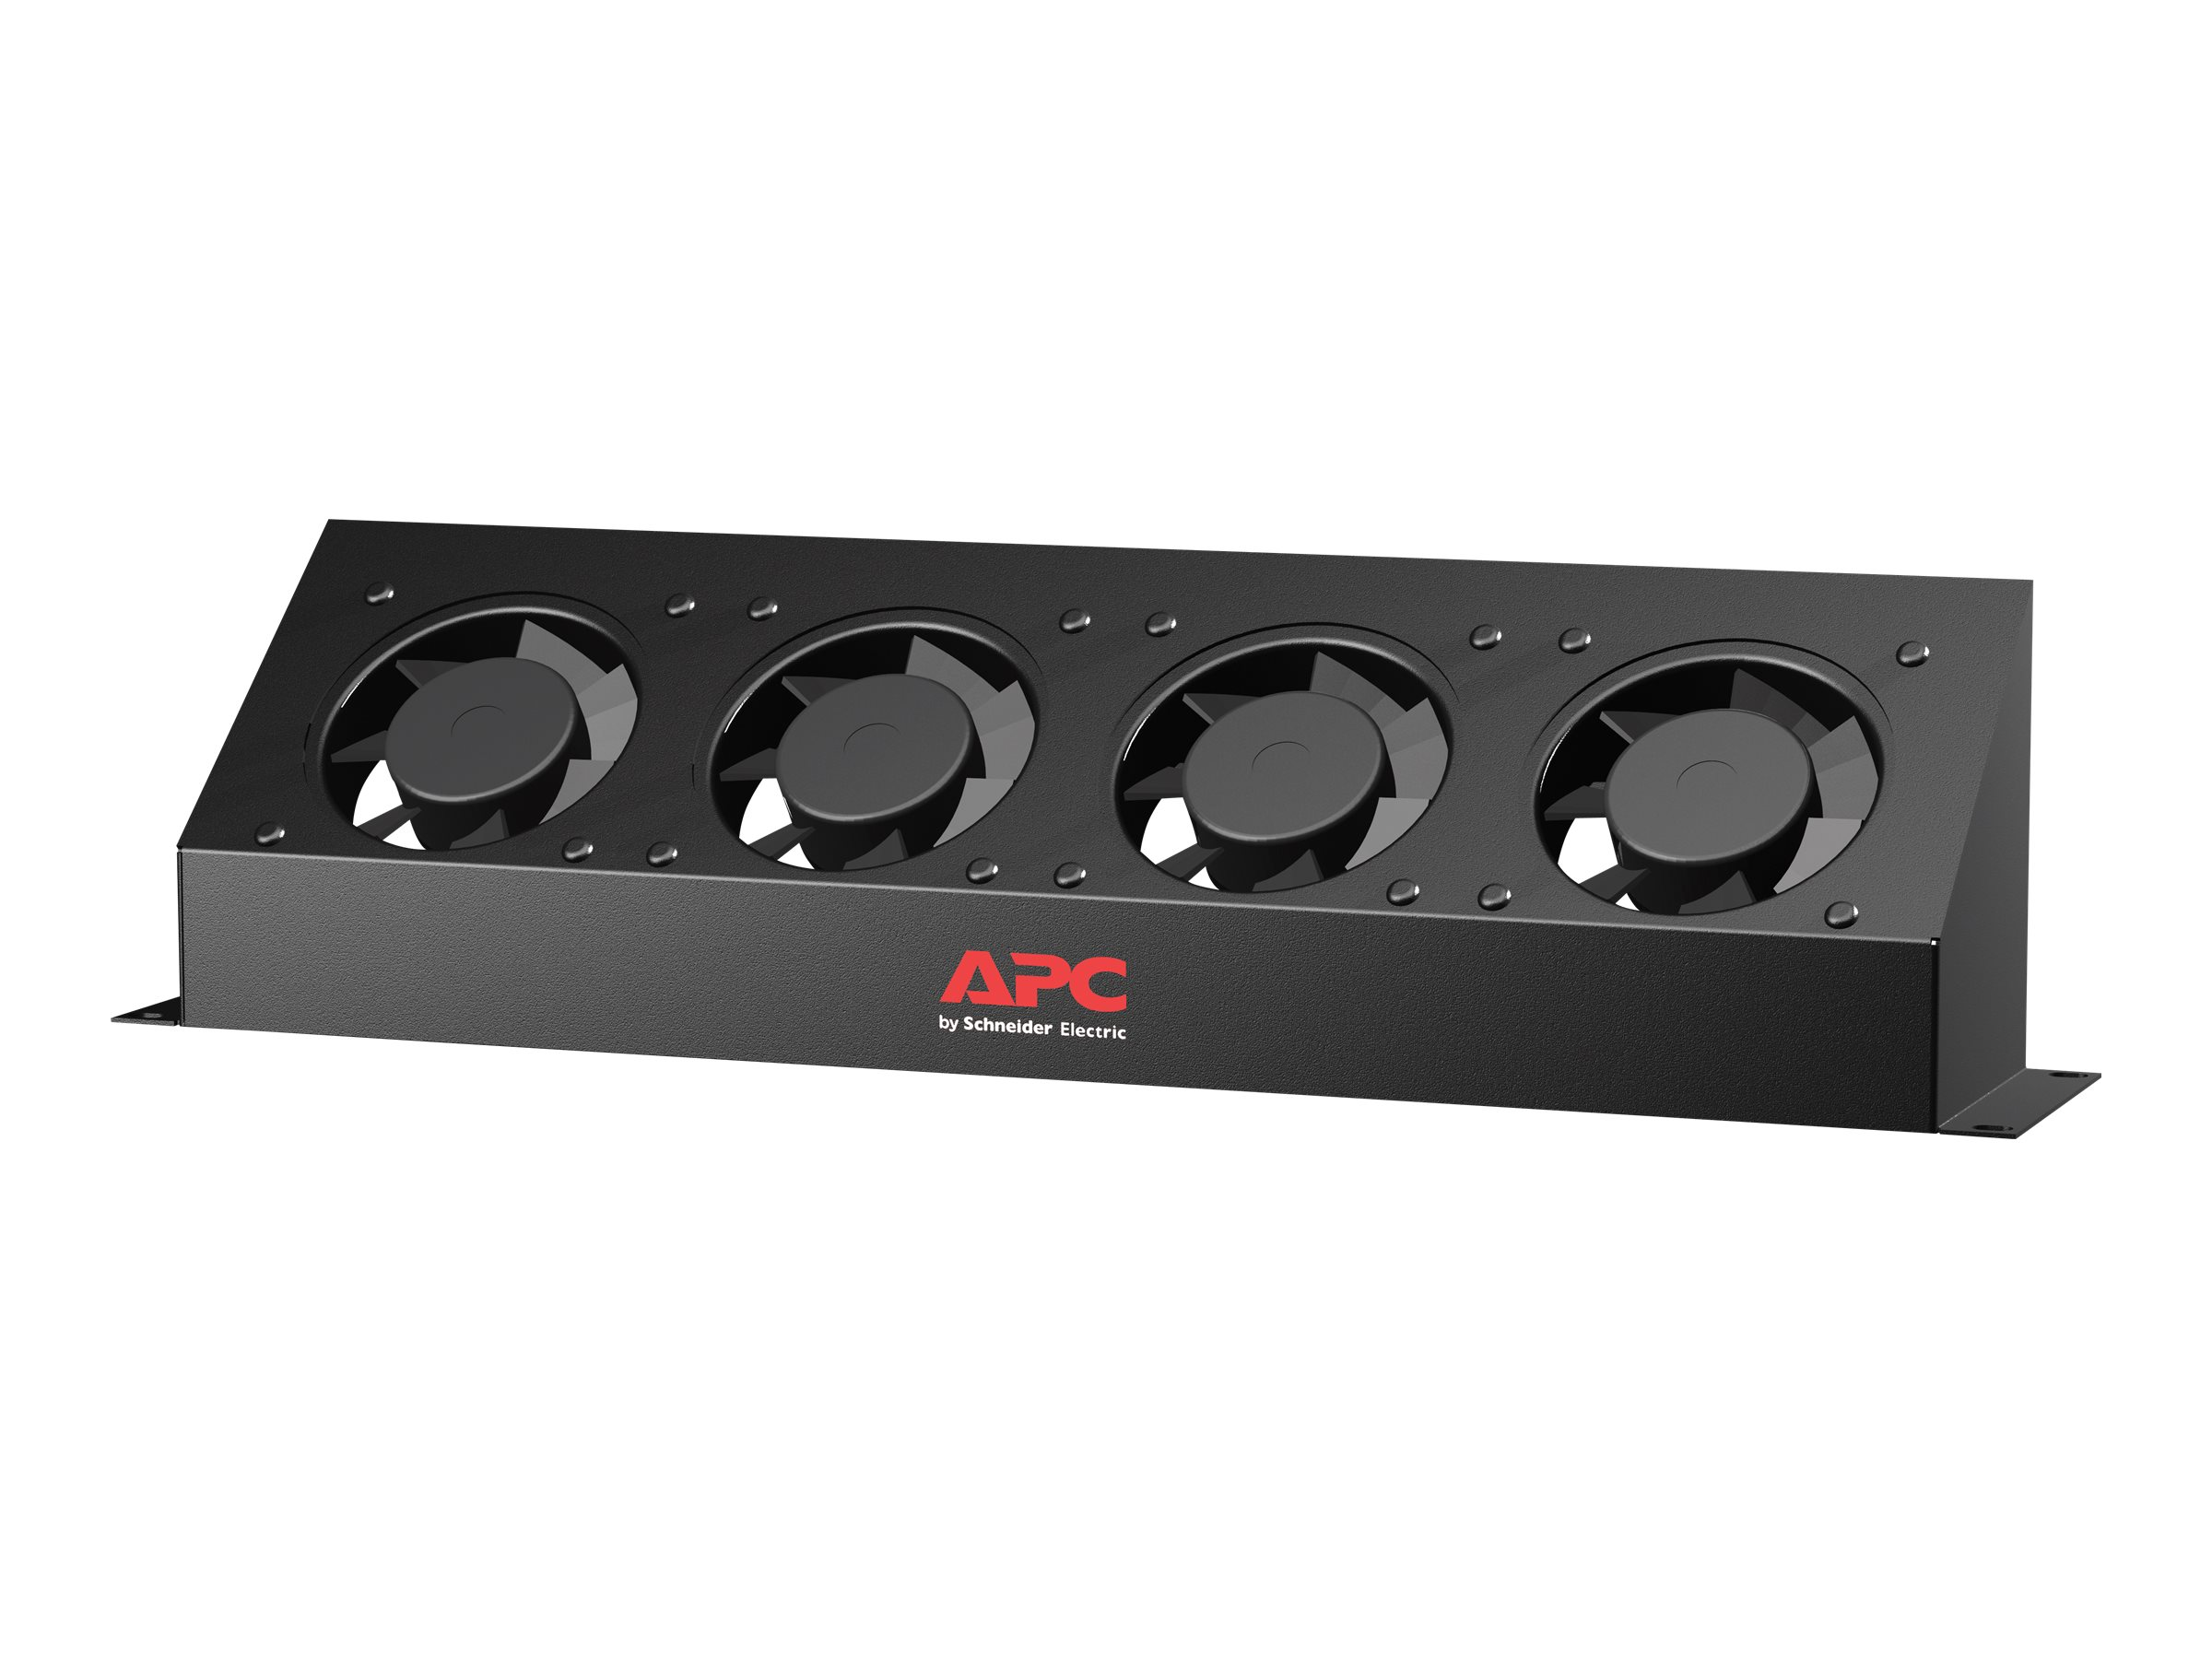 APC rack fan tray - 2U